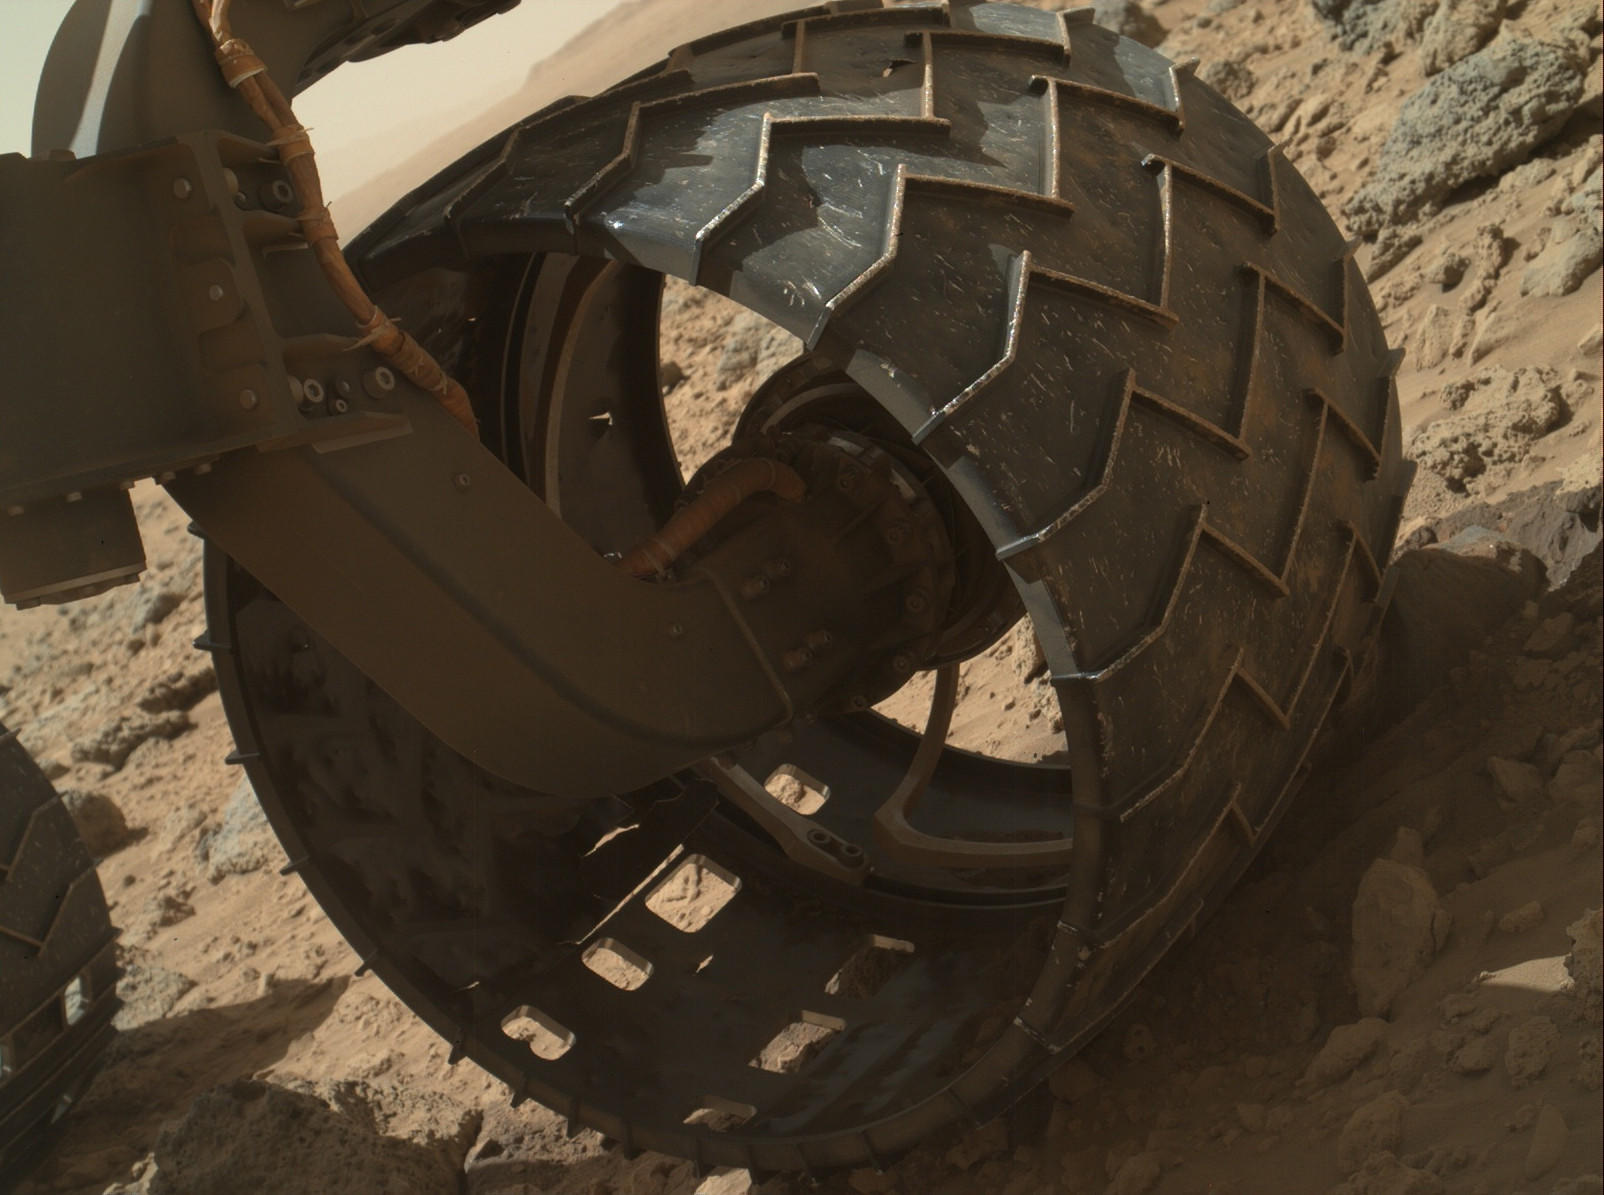 The left front wheel of NASA's Mars rover Curiosity shows dents and holes that could have been the result of sharp rocks on rough terrain, officials at the Jet Propulsion Laboratory say.